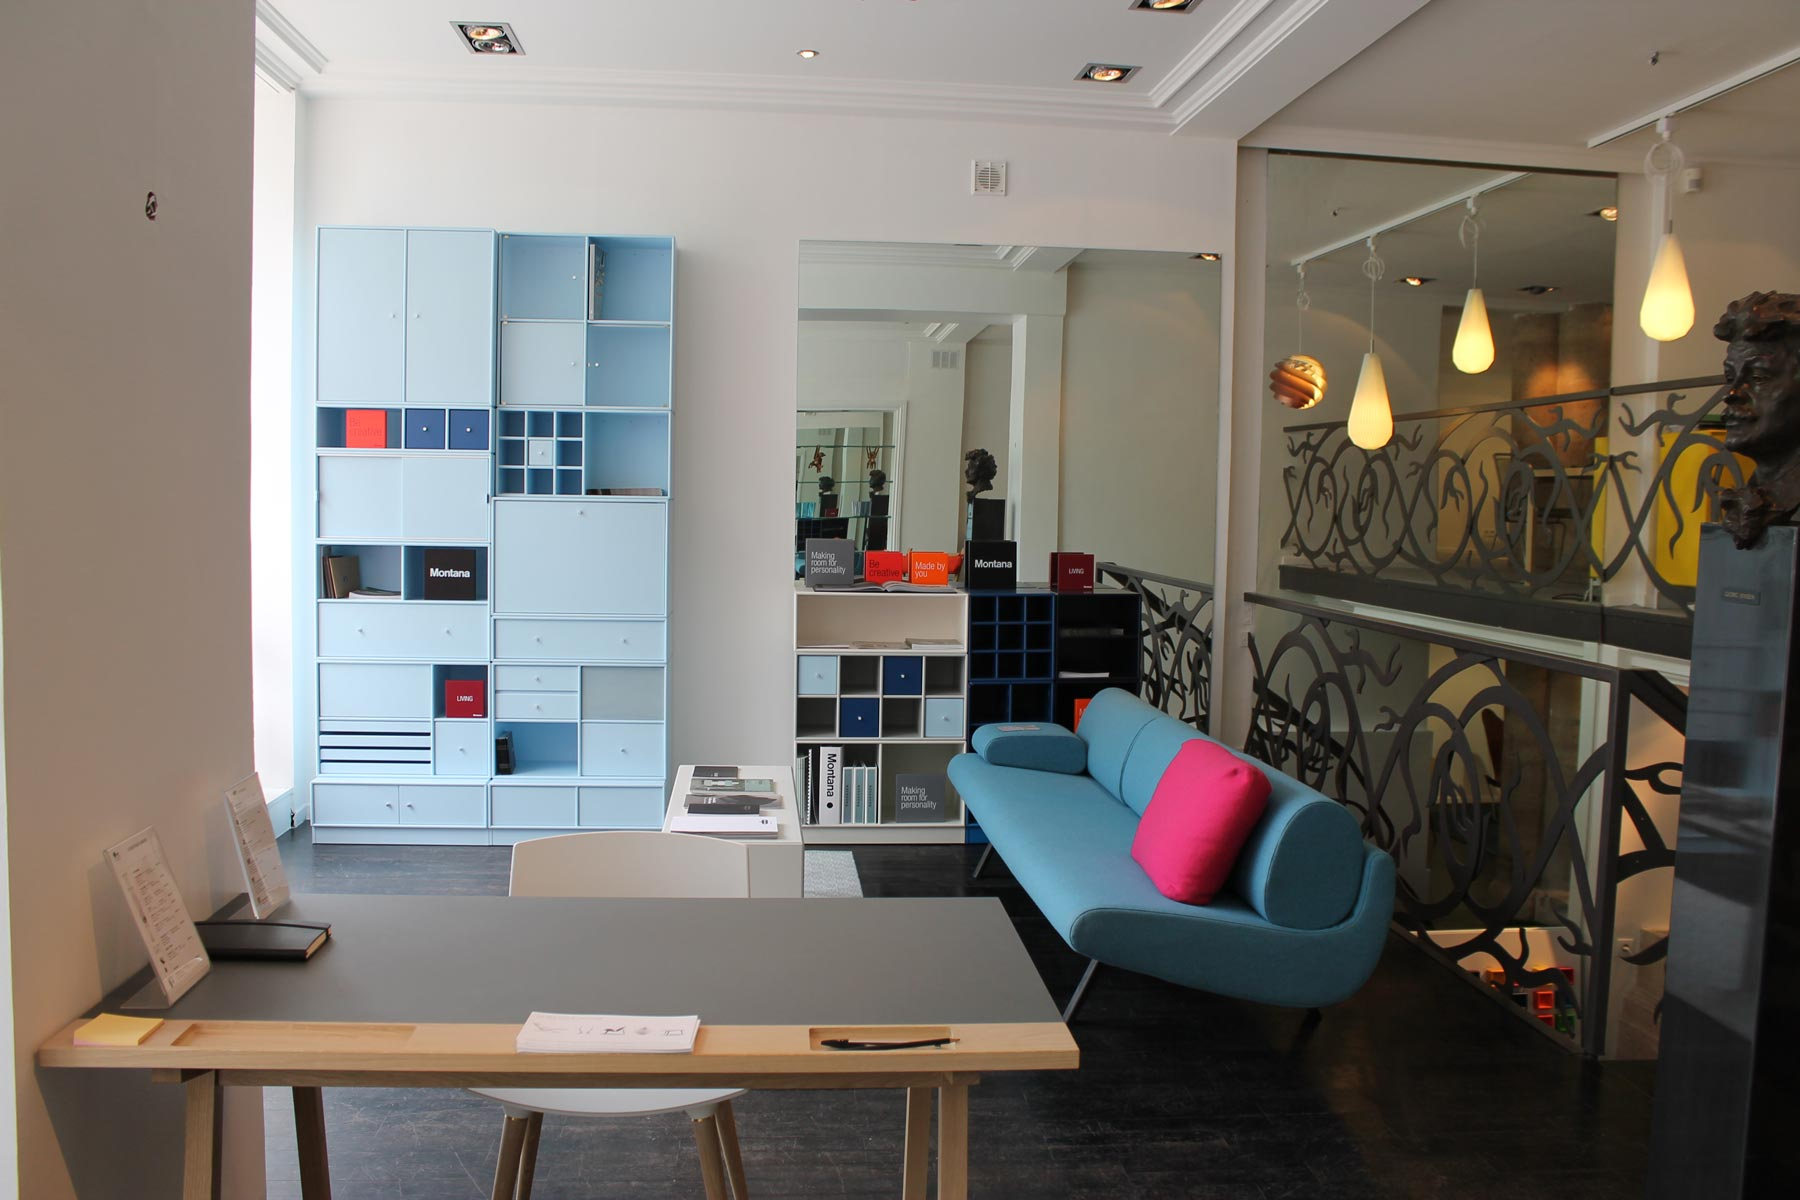 Boutique Meuble Design Paris Magasins Design Scandinave La Boutique Danoise Www